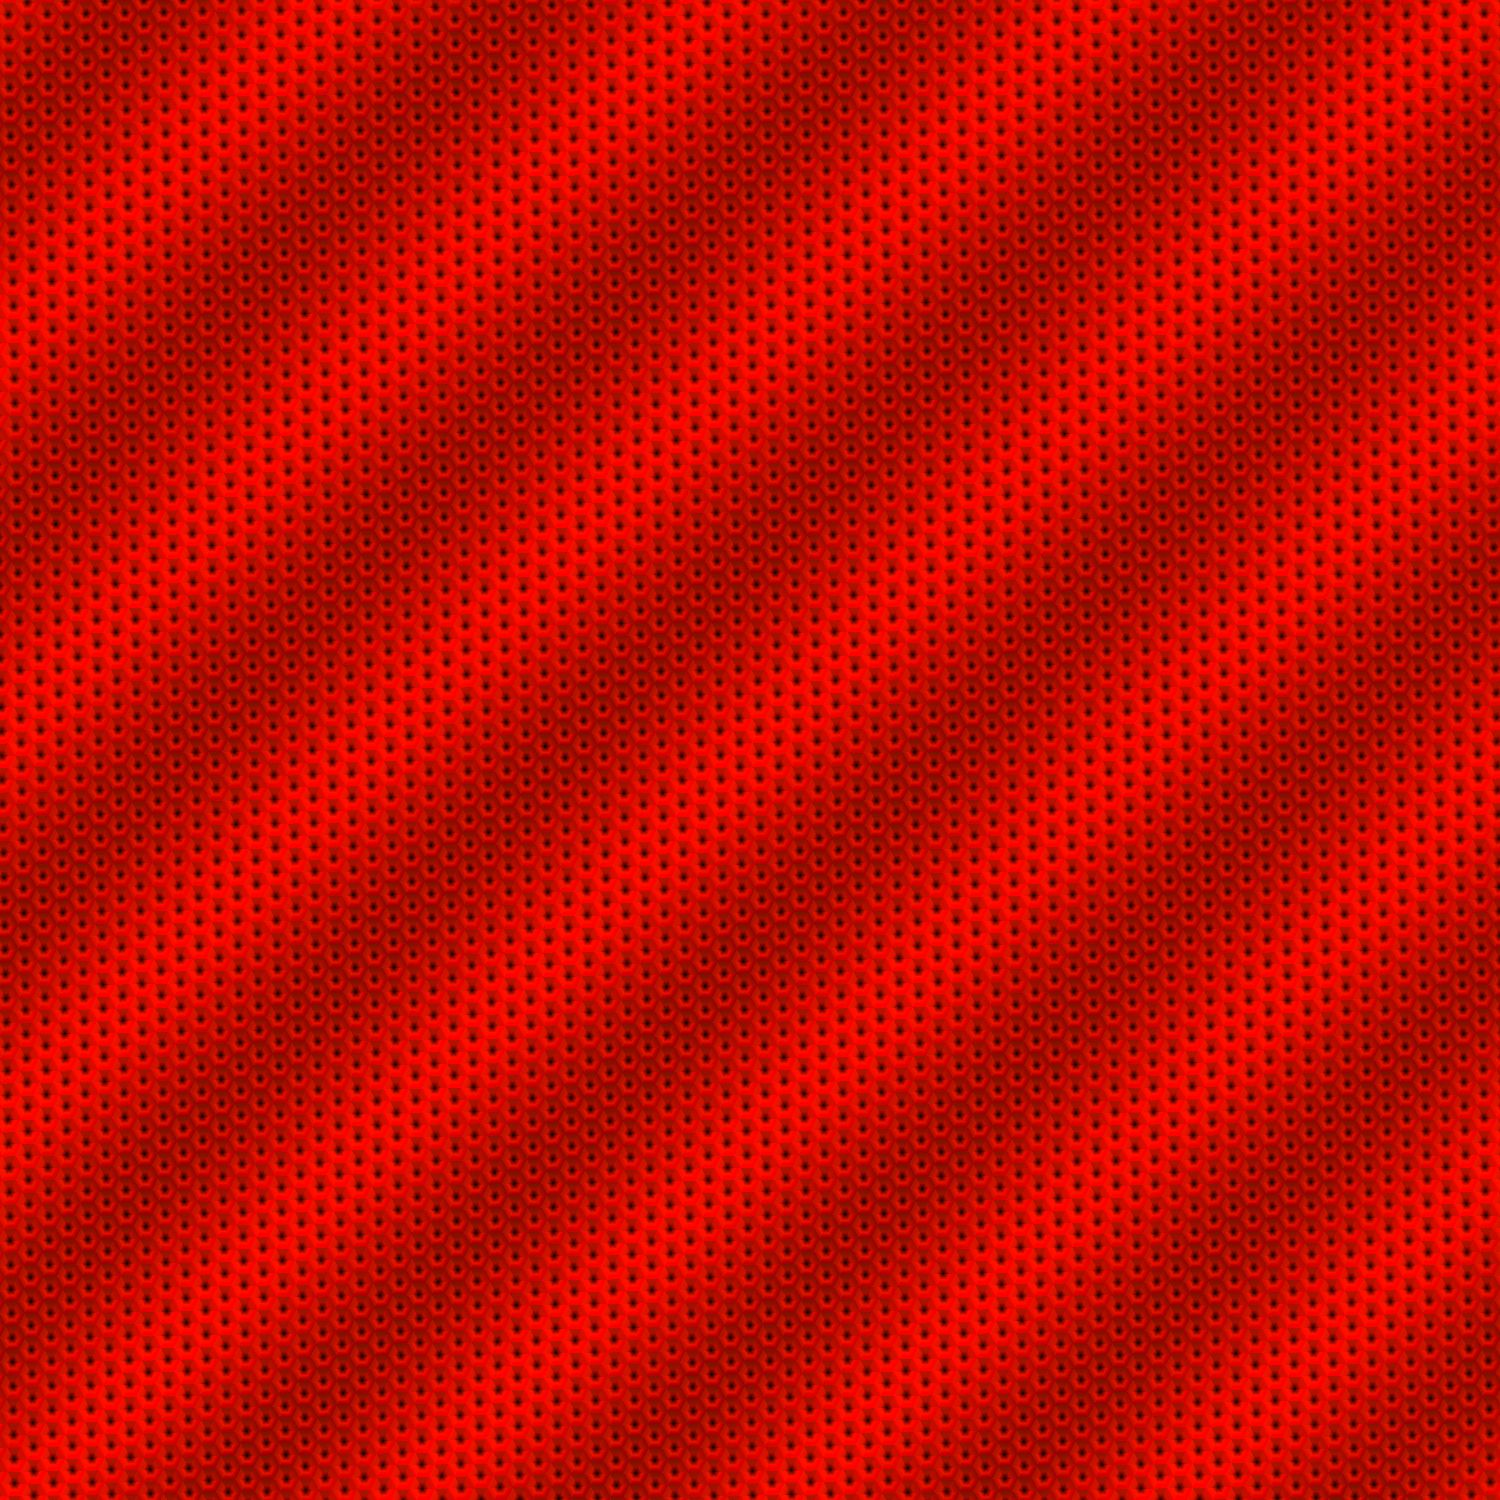 Red Hex Fabric